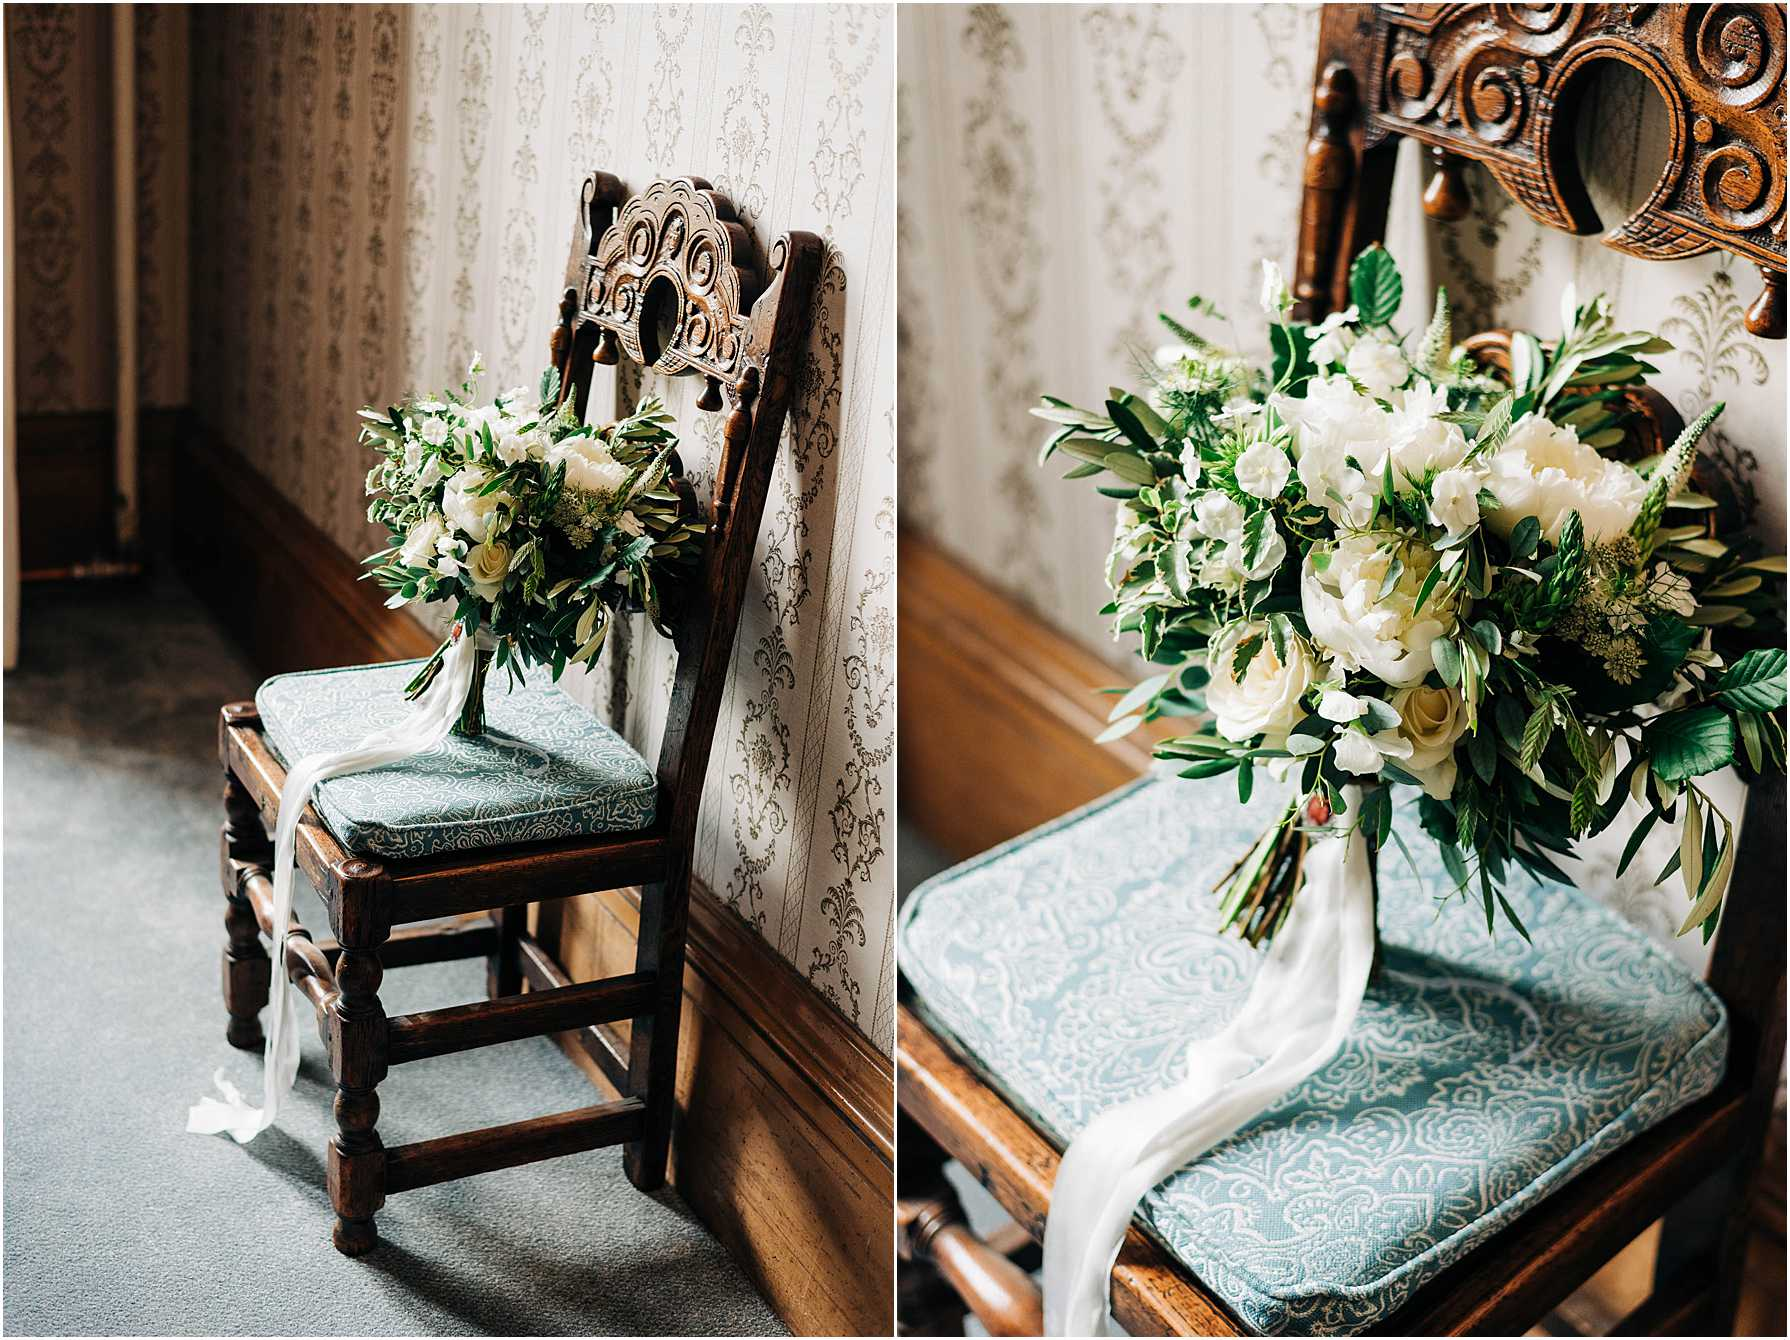 cream and green bouquet with silk ribbon on a dark wooden chair